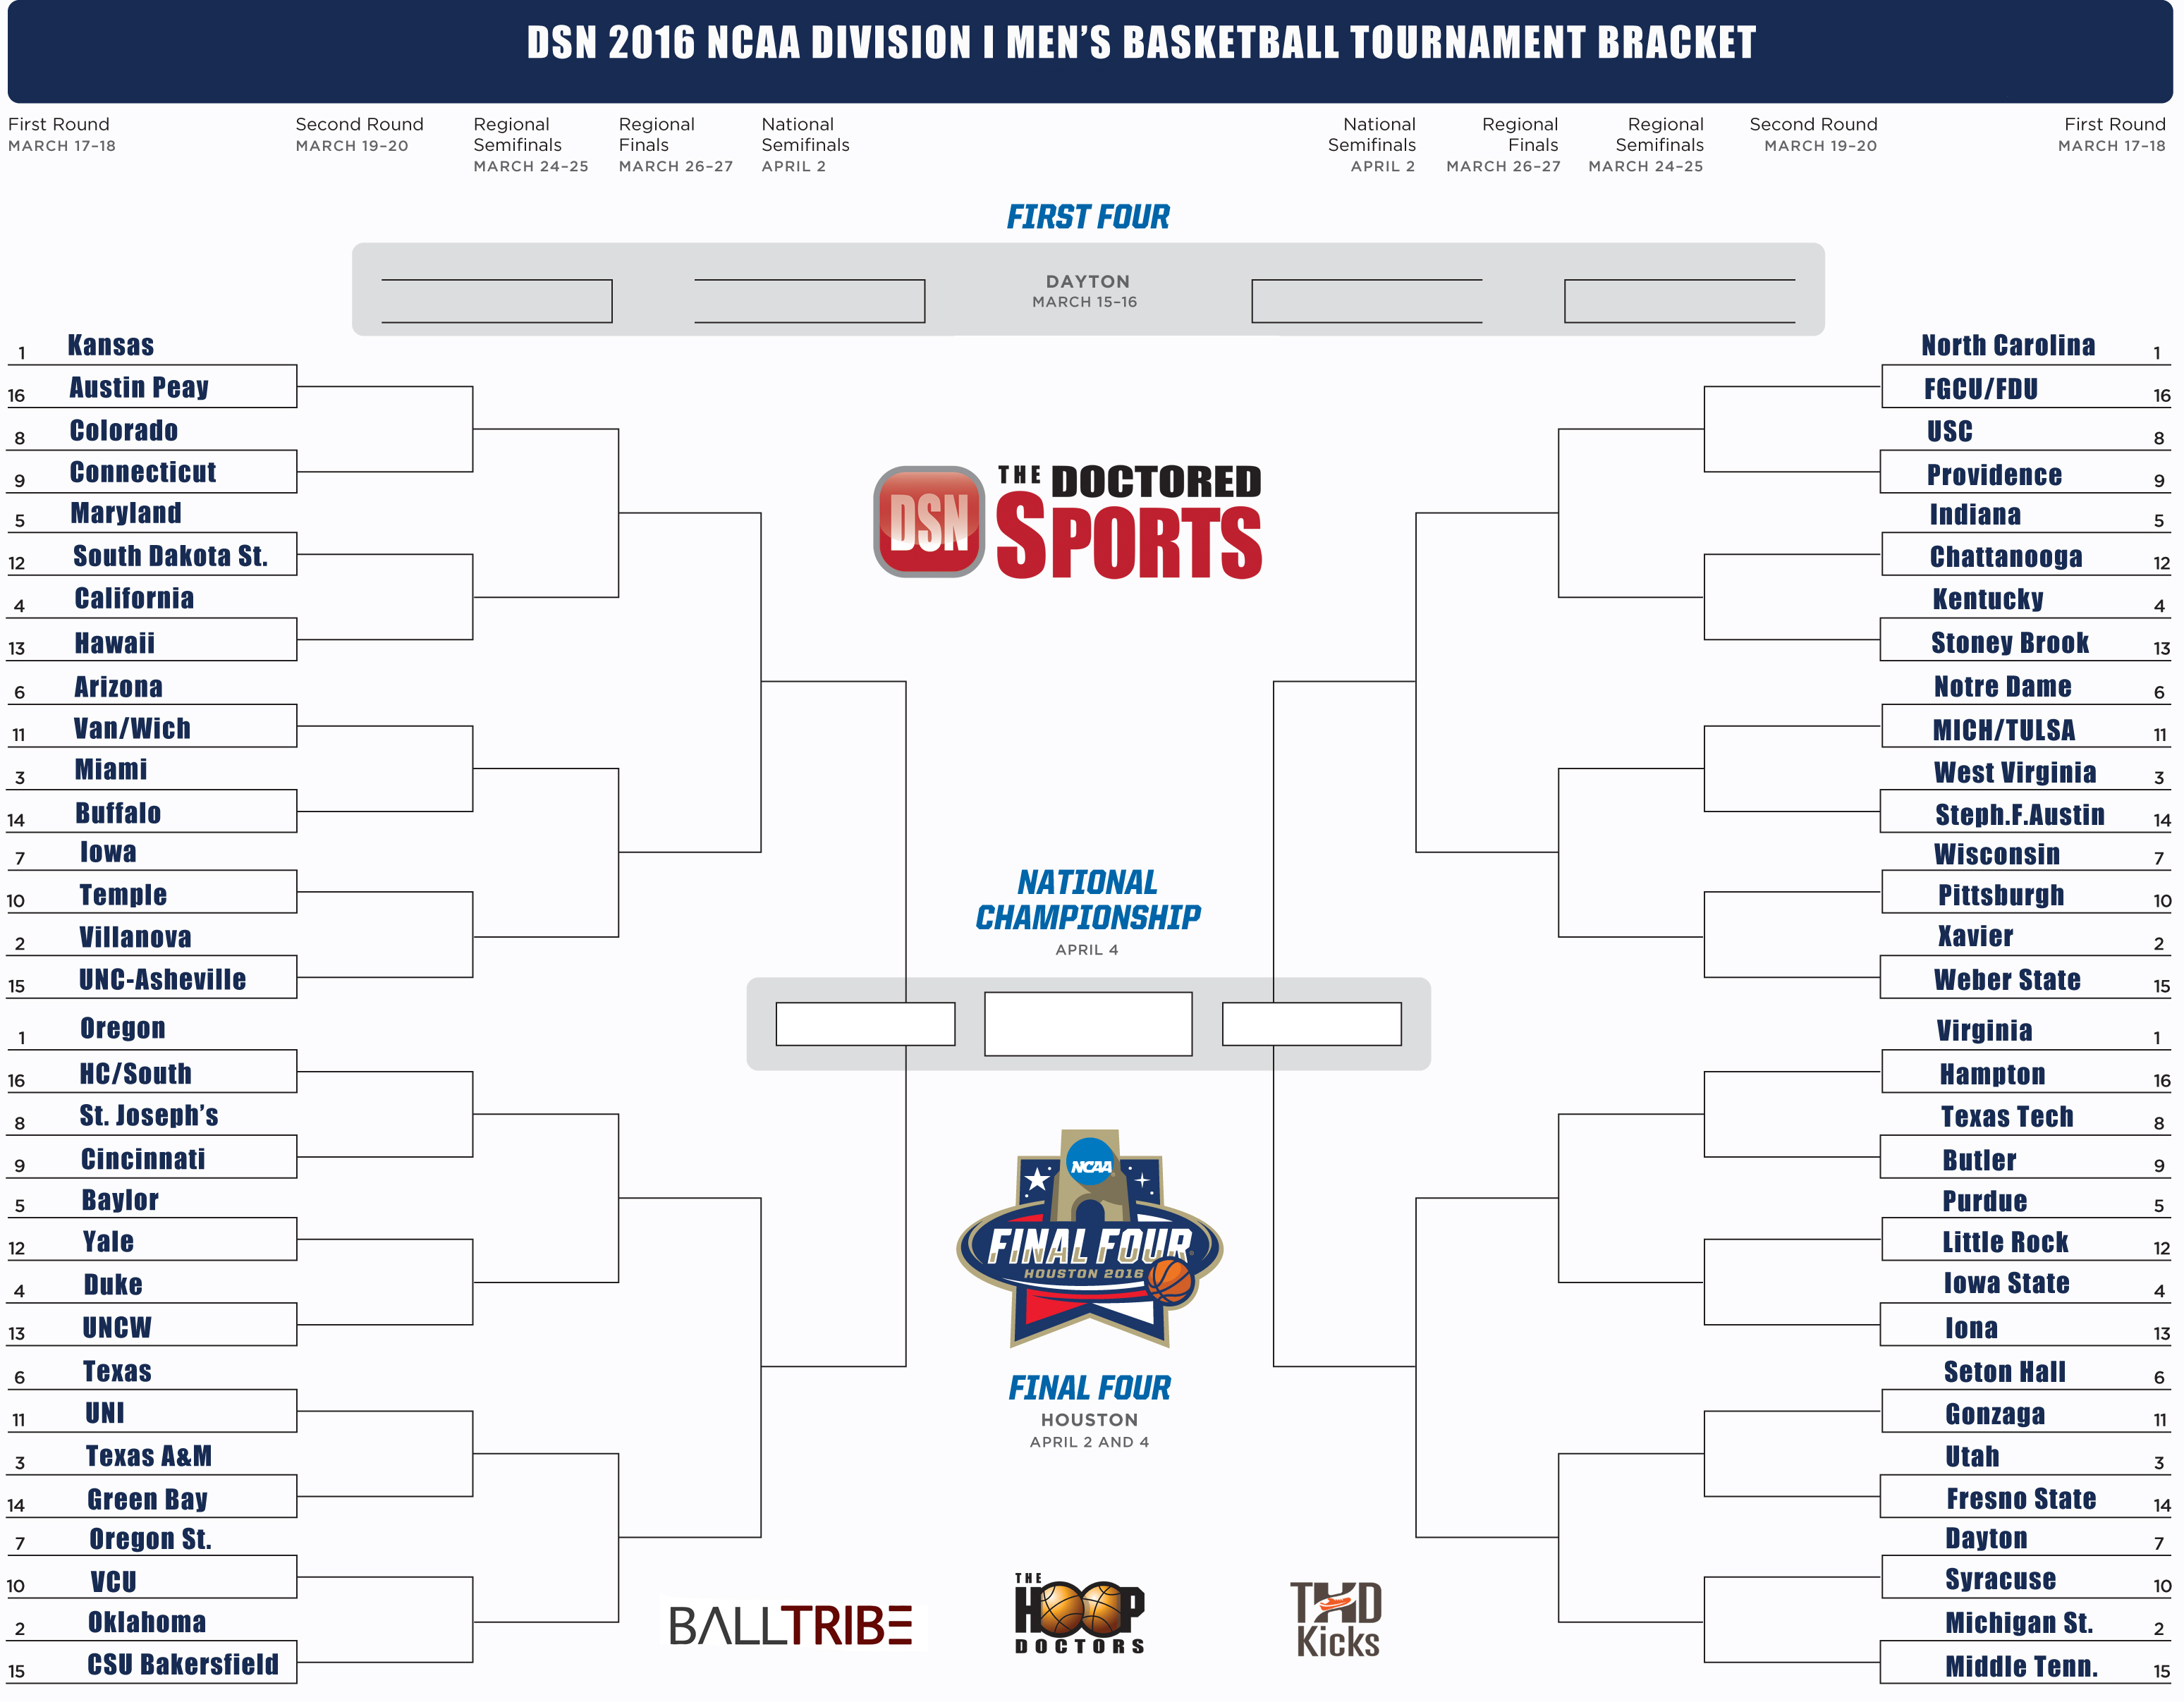 picture about Printable March Madness Bracket referred to as 2016 Printable Bracket for March Insanity With Groups